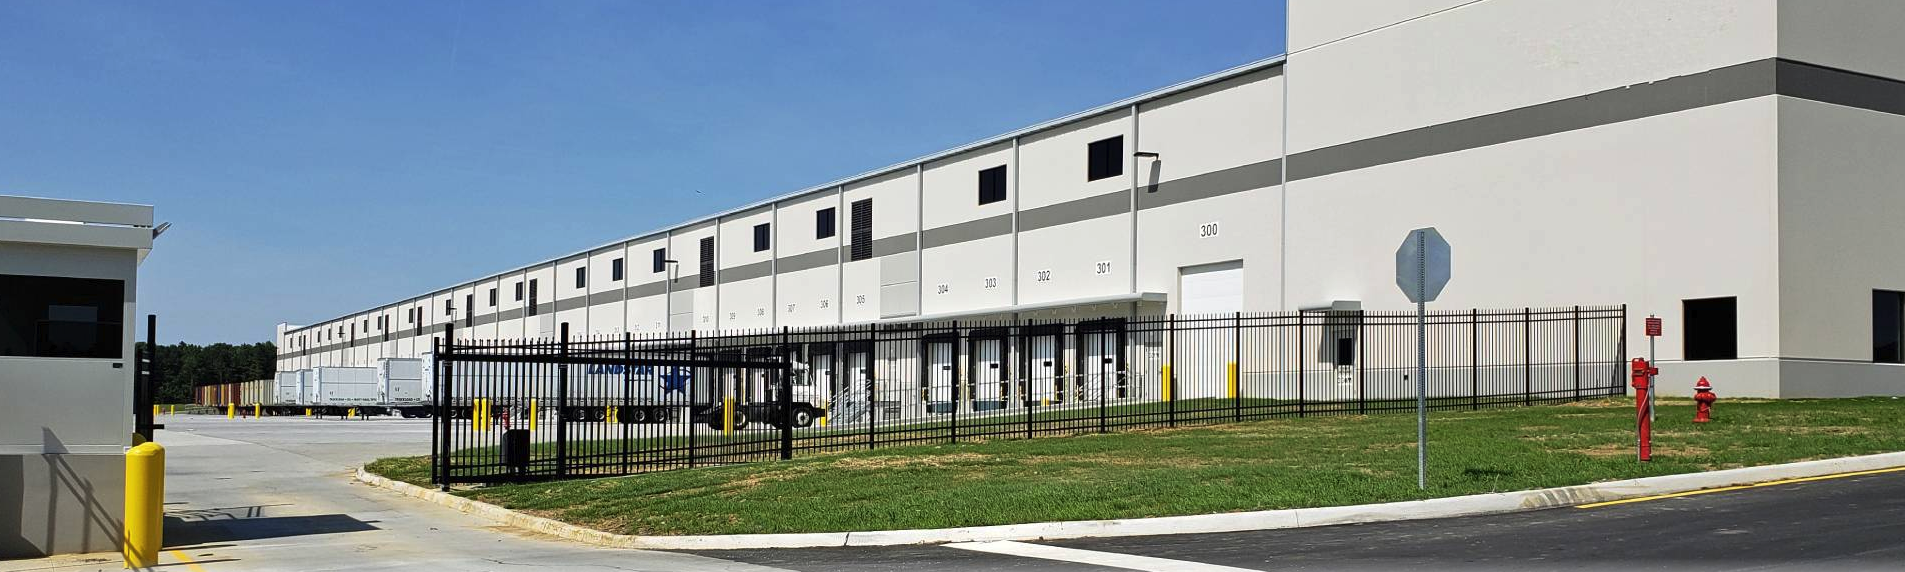 The Shippers Group Richmond, VA facility exterior